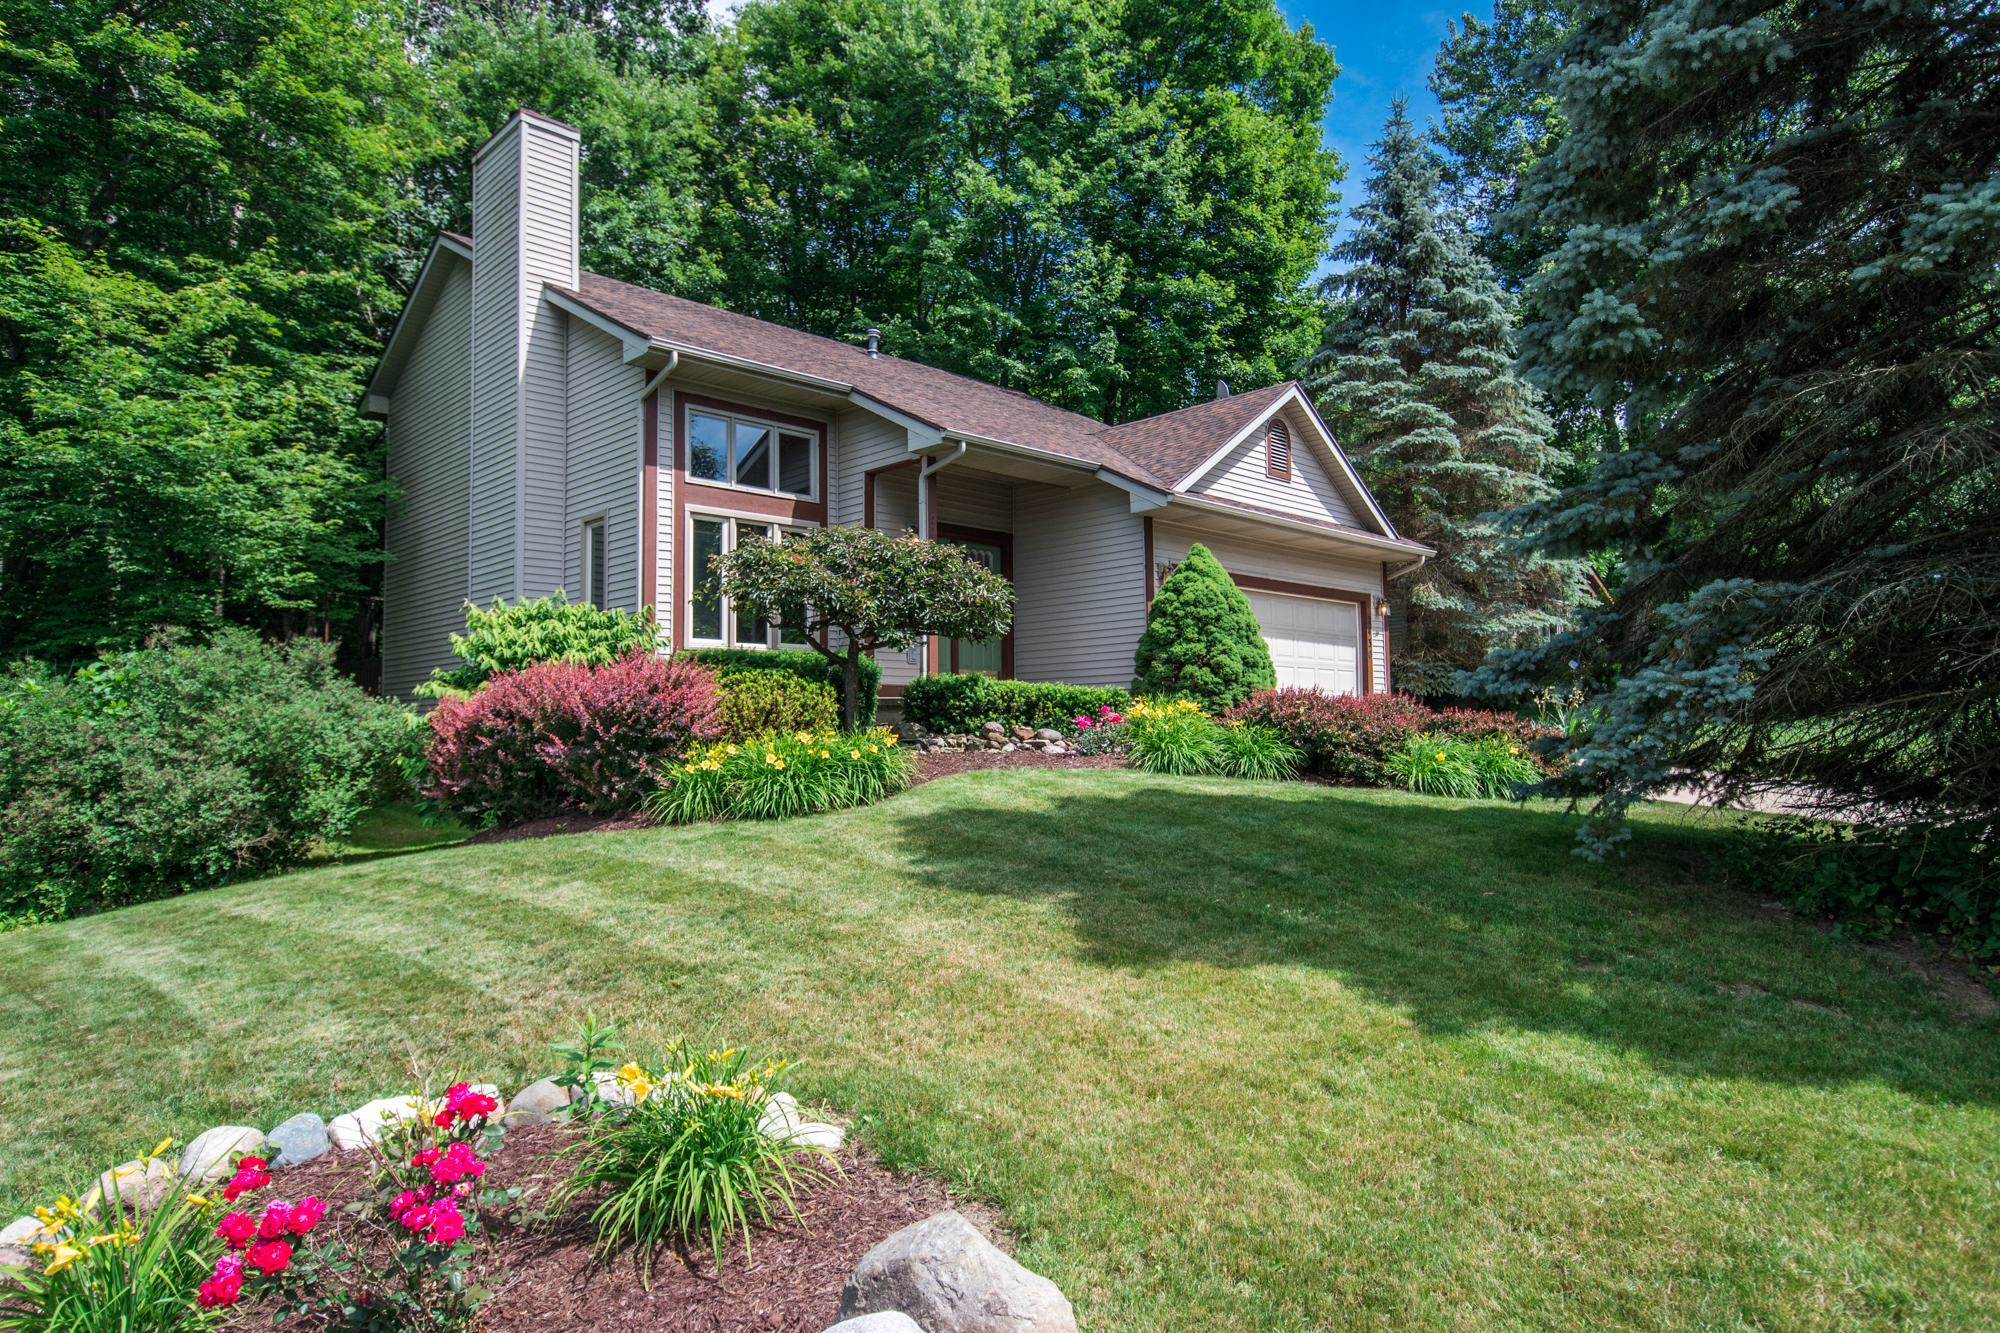 Pocasset Way-Holt-$209,000   DOM (Days on Market) 18 / Sold for 99.5% of asking price.   This client wanted to move closer to work to cut down on drive time. We aggressively marketed this home and had 9 showings until we got our acceptable offer!